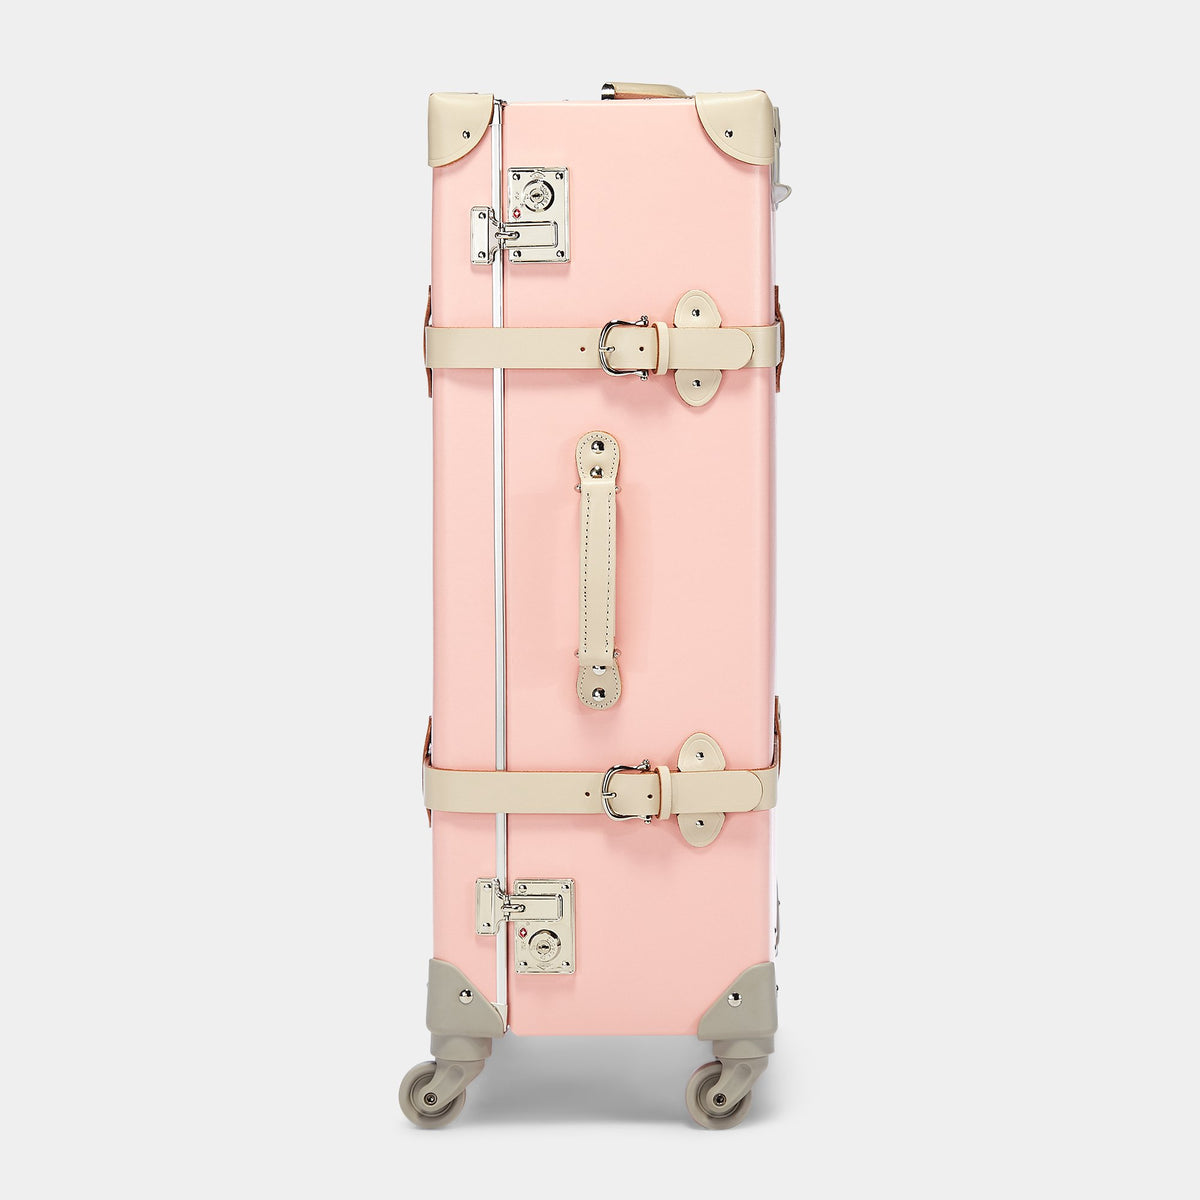 The Botanist Spinner in Pink - Vintage-Inspired Suitcase - Exterior Side view